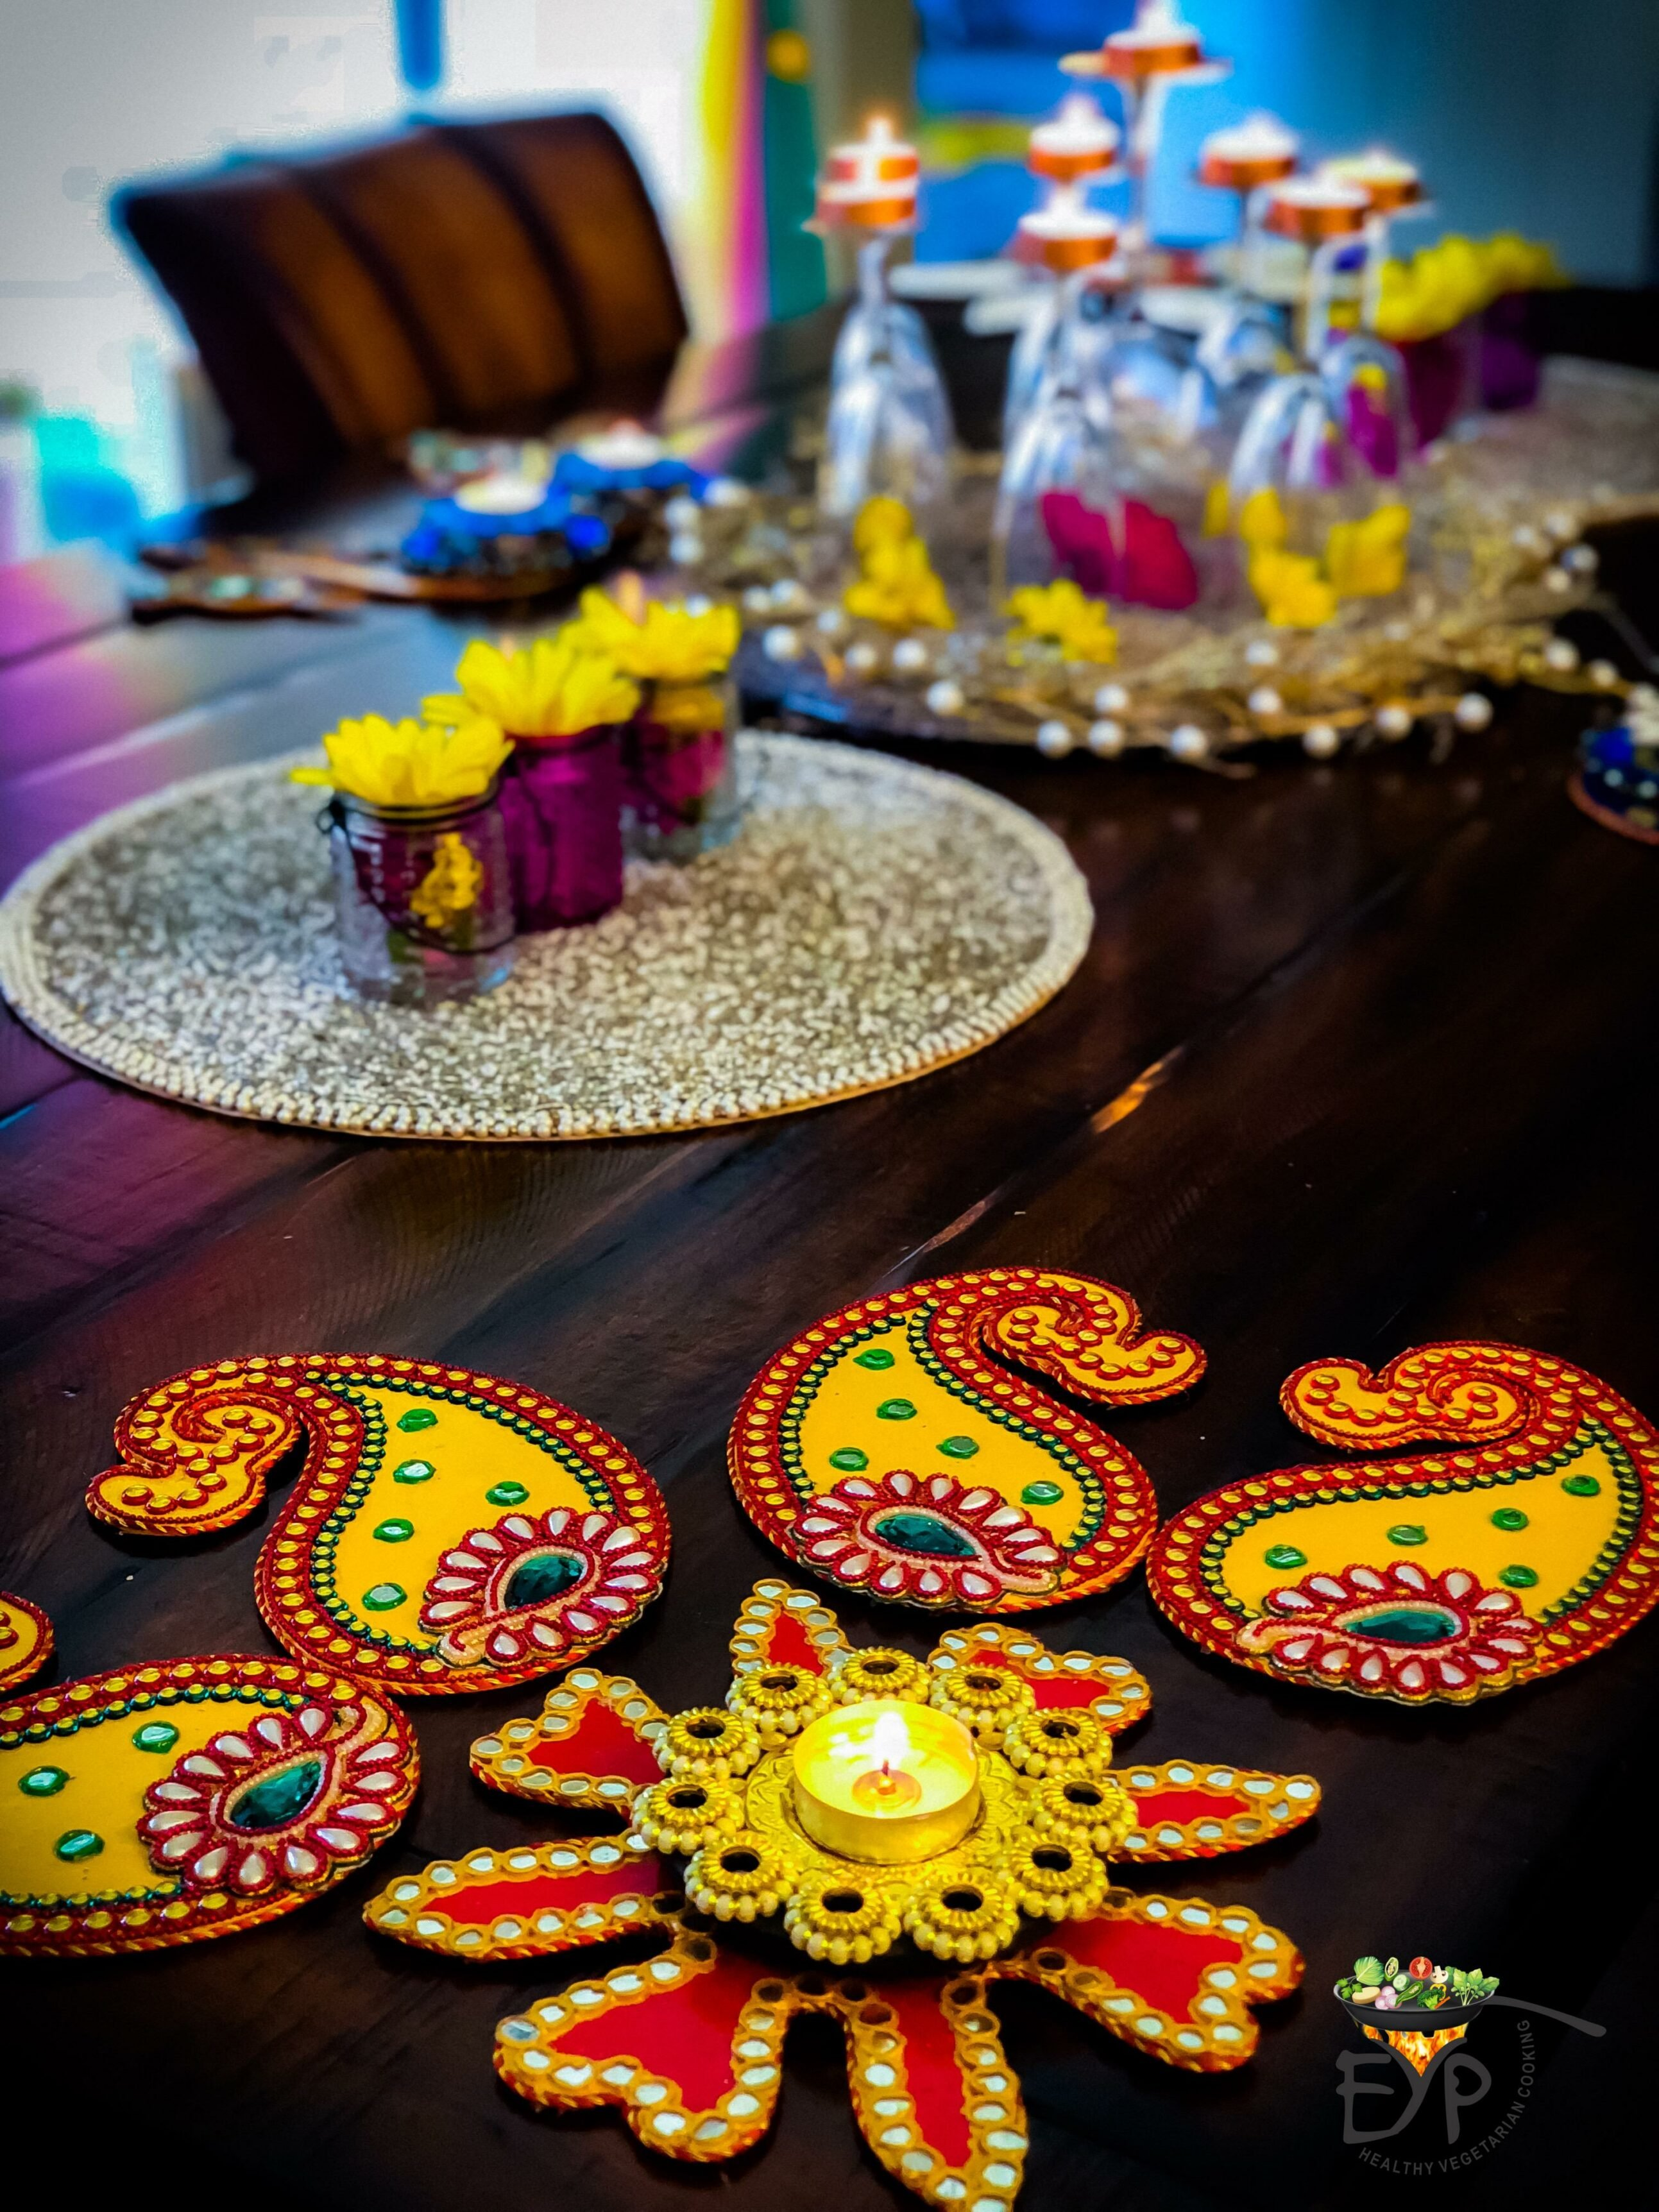 This is how I jazzed-up our Diwali! Ideas for your event that you can use for other ethnic gatherings also.